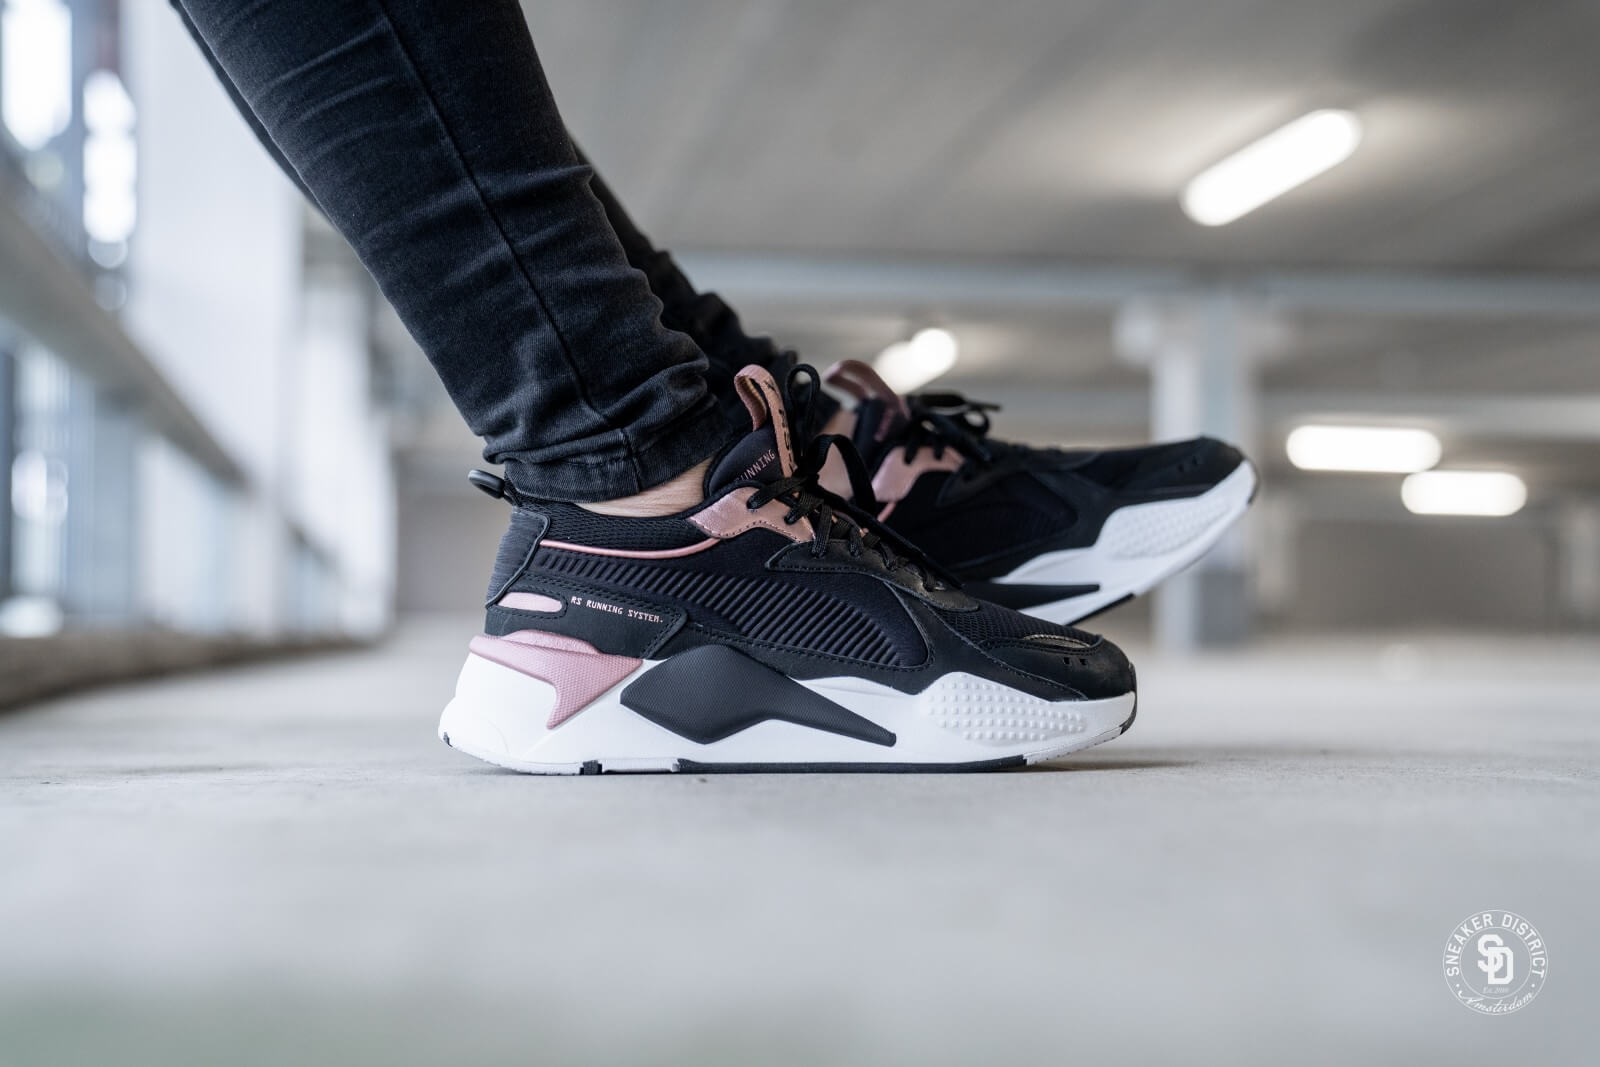 Puma RS-X Trophy Puma Black/Rose Gold - 0369451-04